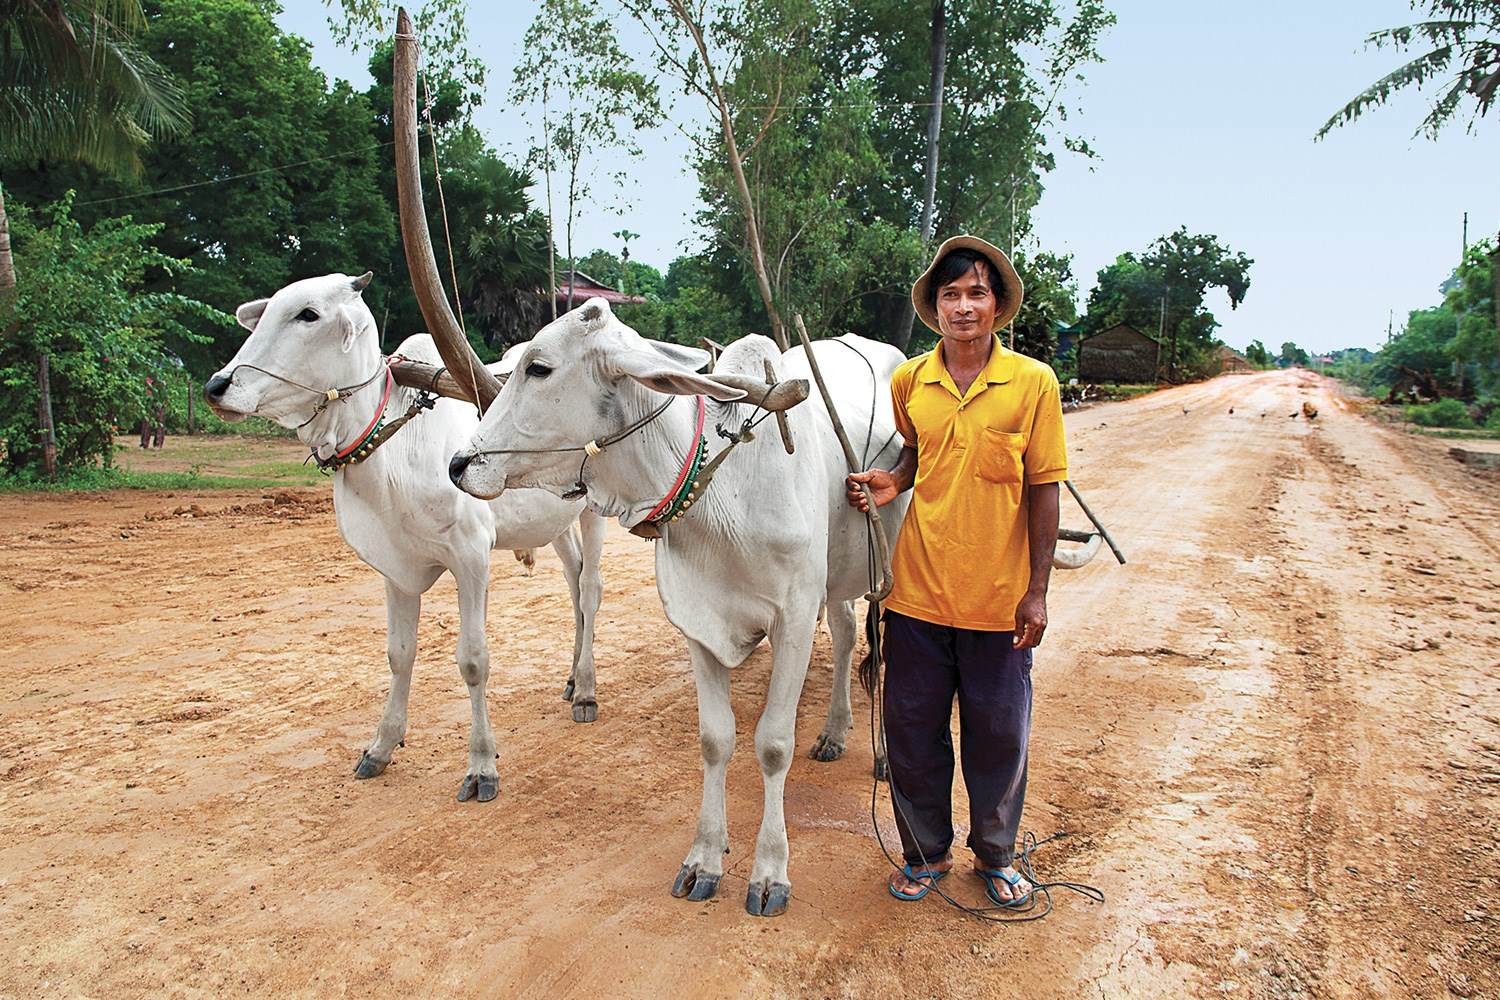 richesofthemekong_OUDONG_Ox_Cart_IMG_0643_UG2_48752_gallery.jpg